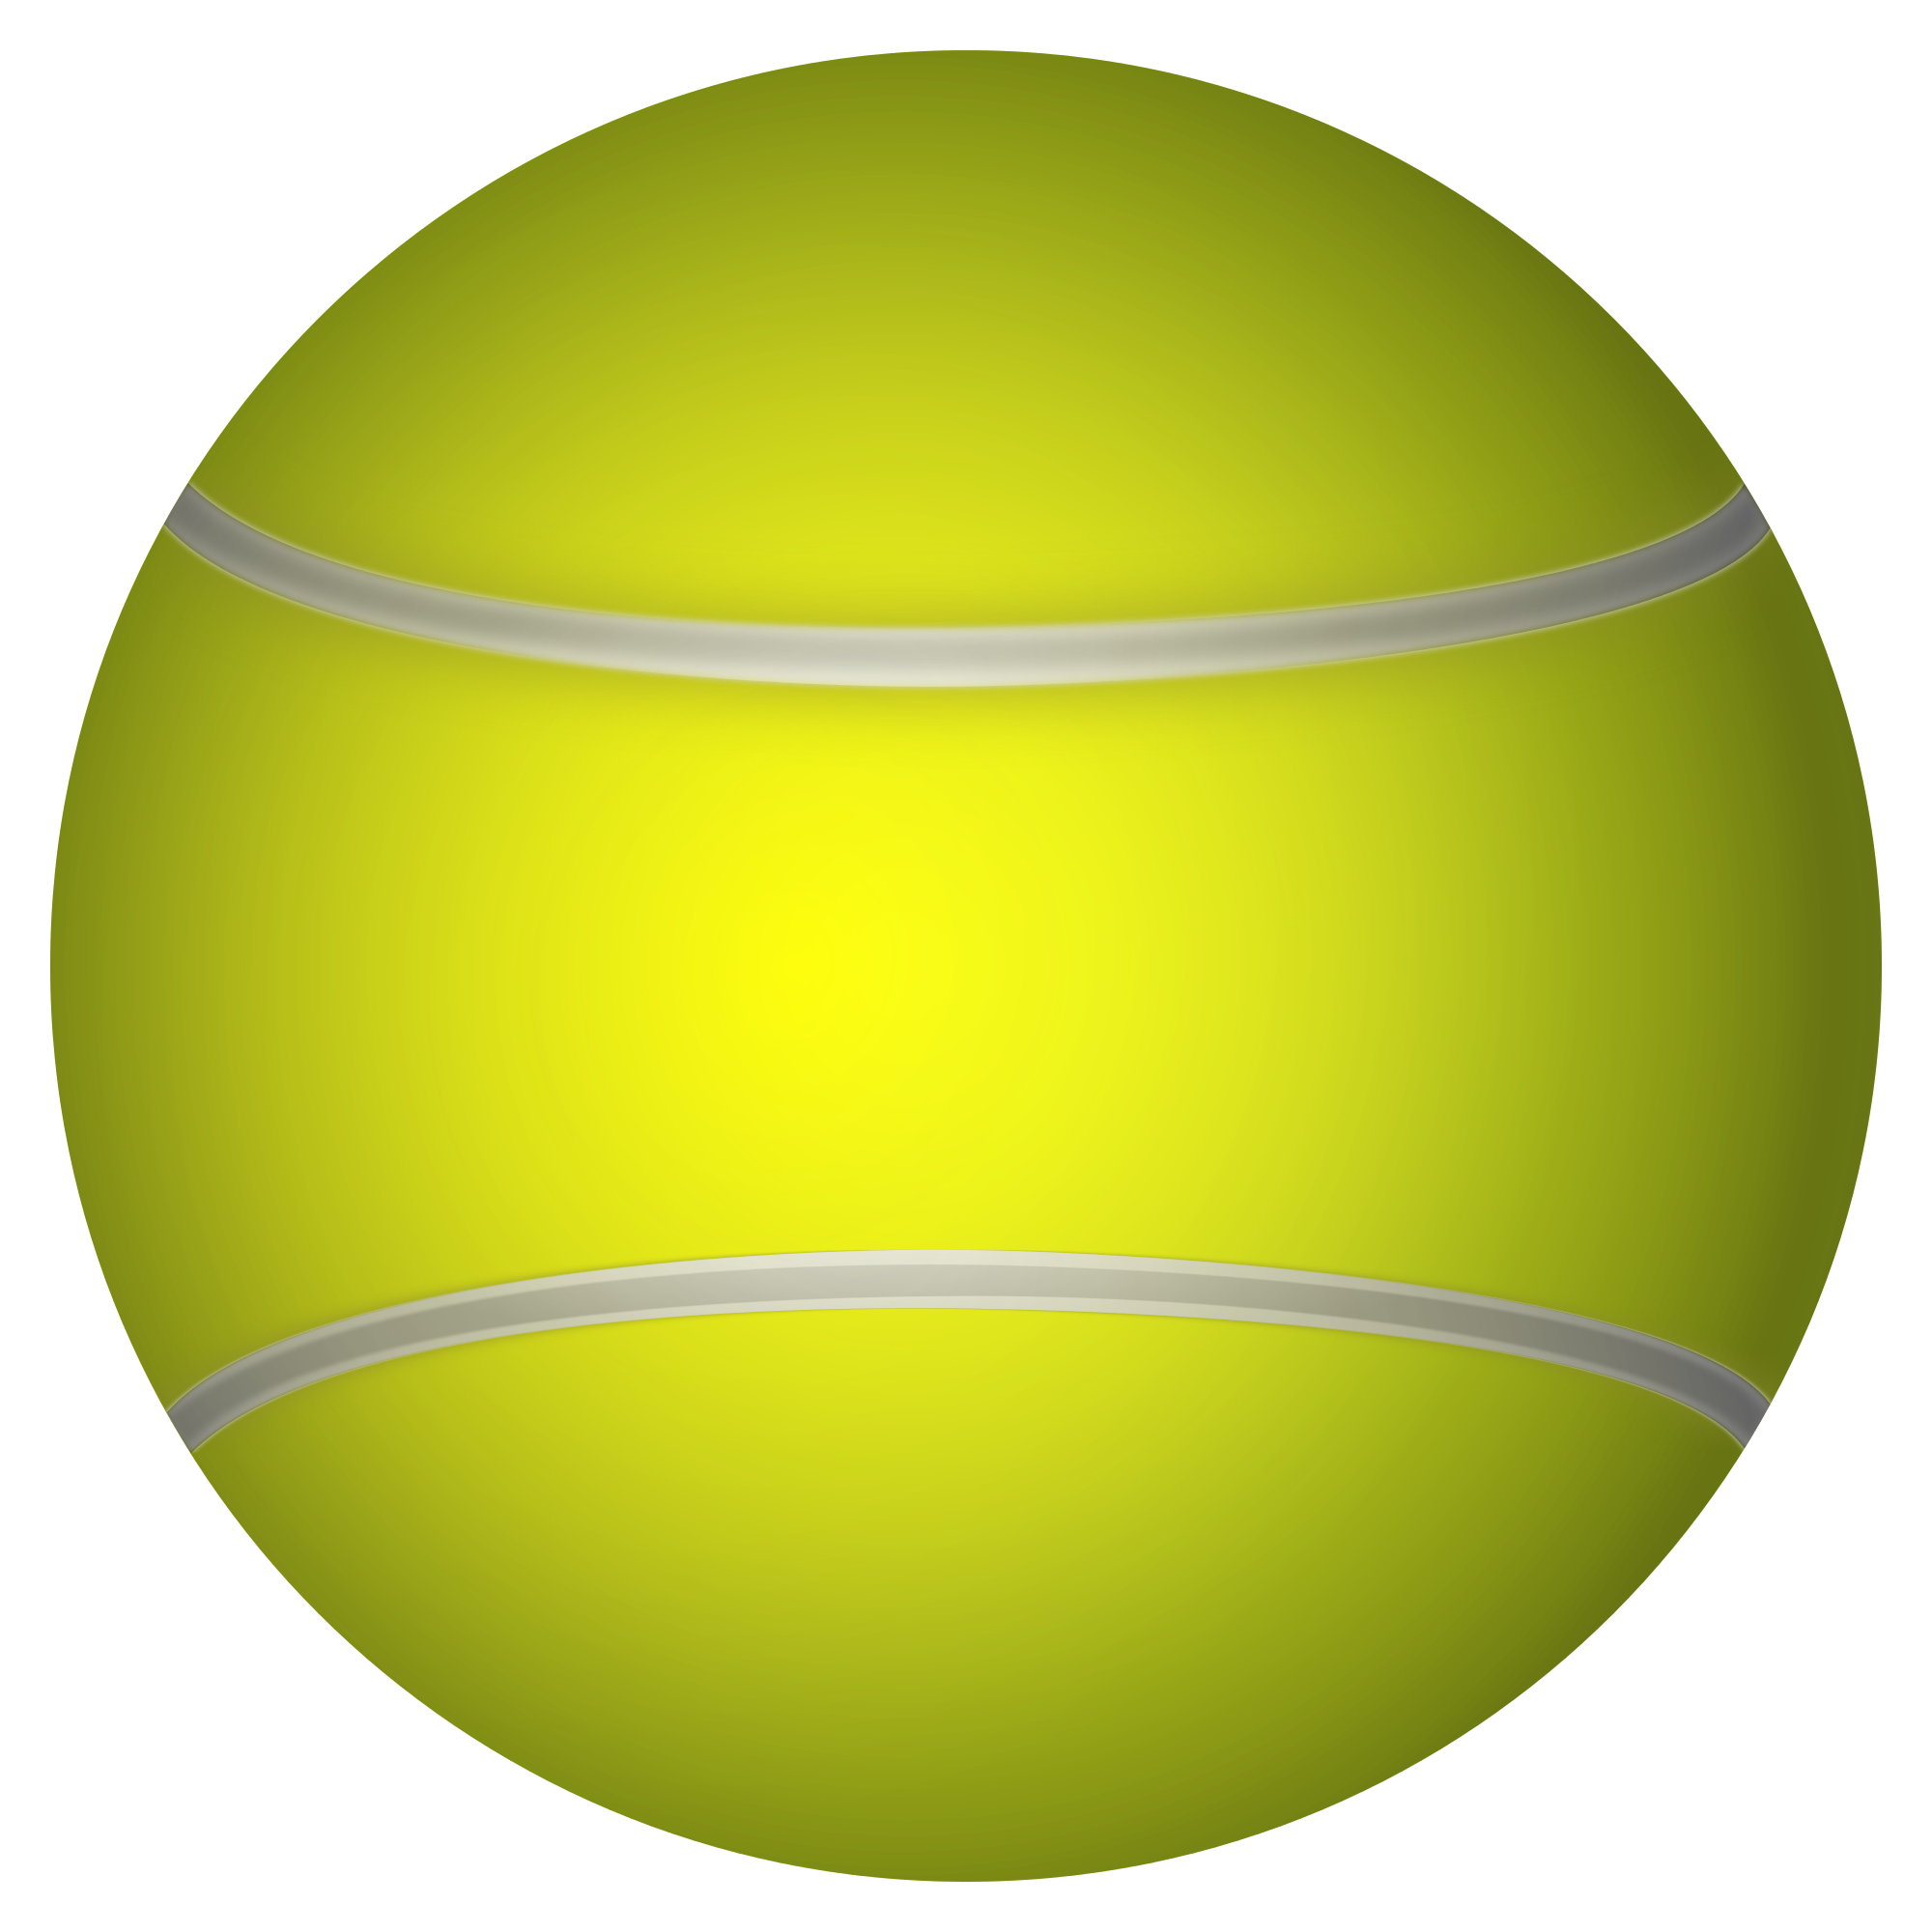 Tennis Ball Png Image Tennis Ball Ball Tennis